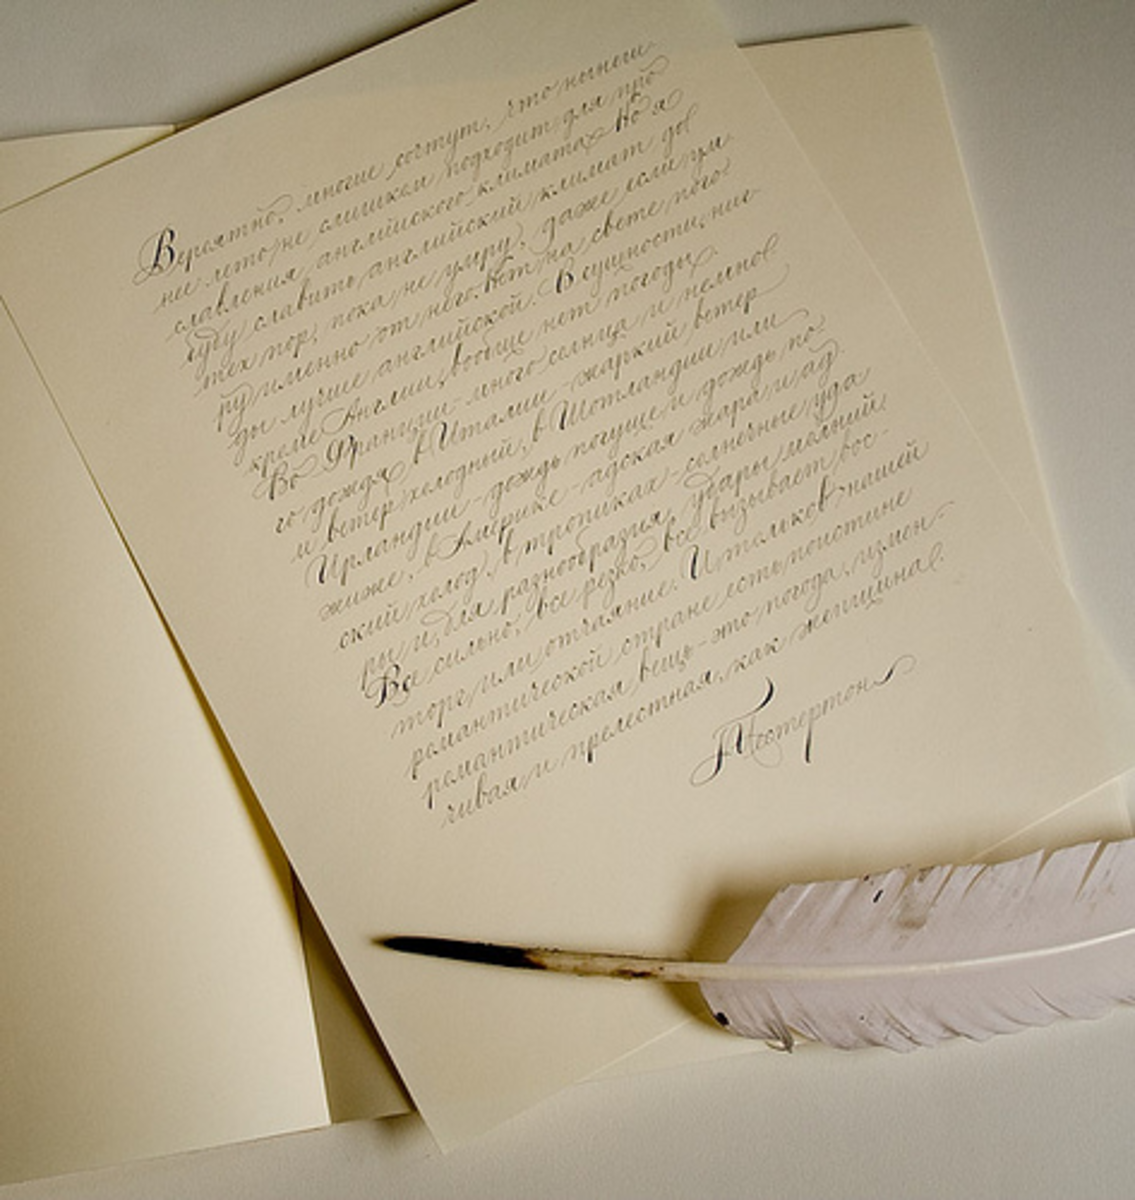 There's something romantic about letters written with a feather quill, don't you think?